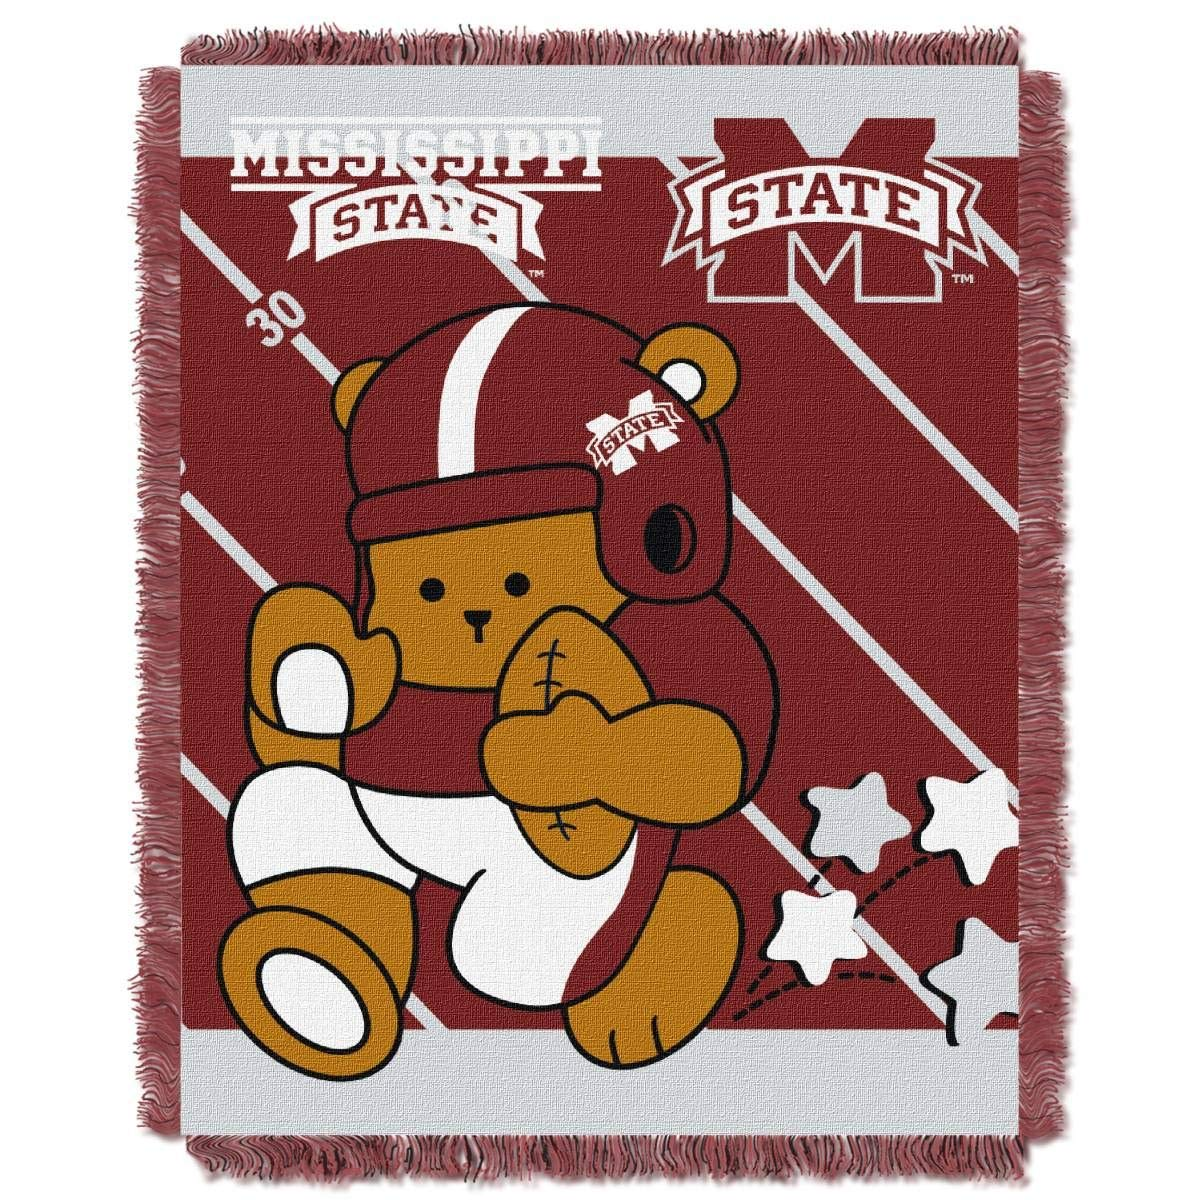 "Officially Licensed NCAA ""Fullback"" Jacquard Woven Baby Throw Blanket, 36"" x 46"", Multi Color"